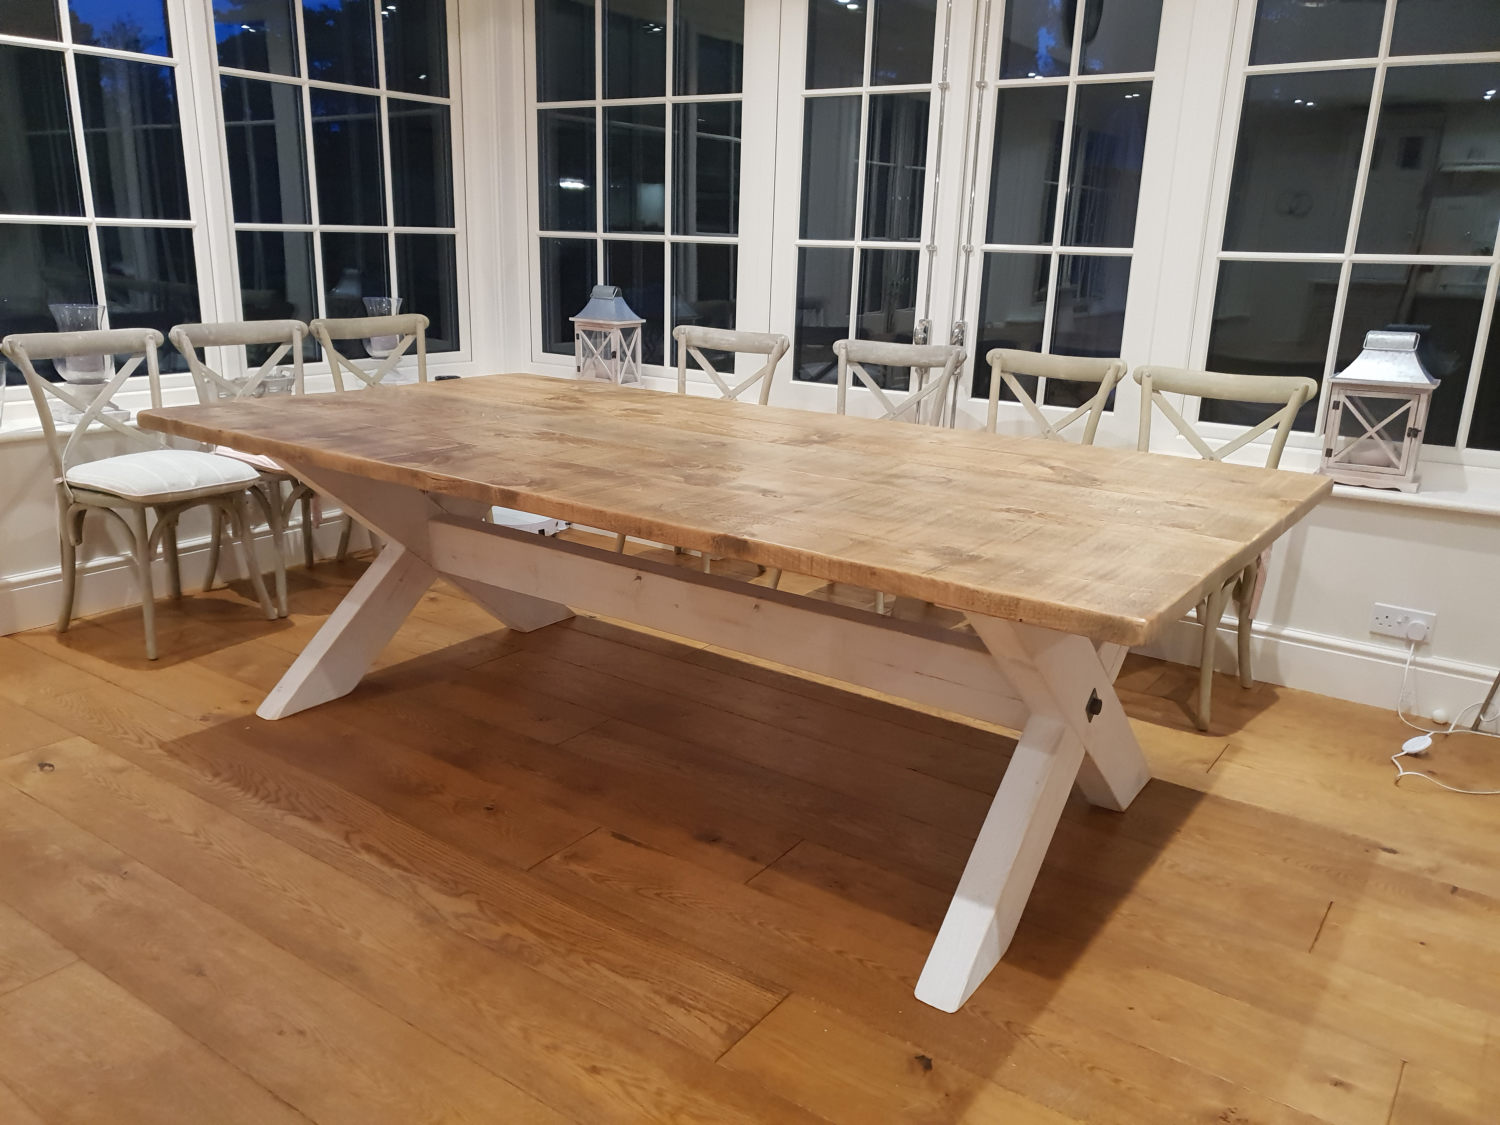 And finally our large X frame table moves into its new home!